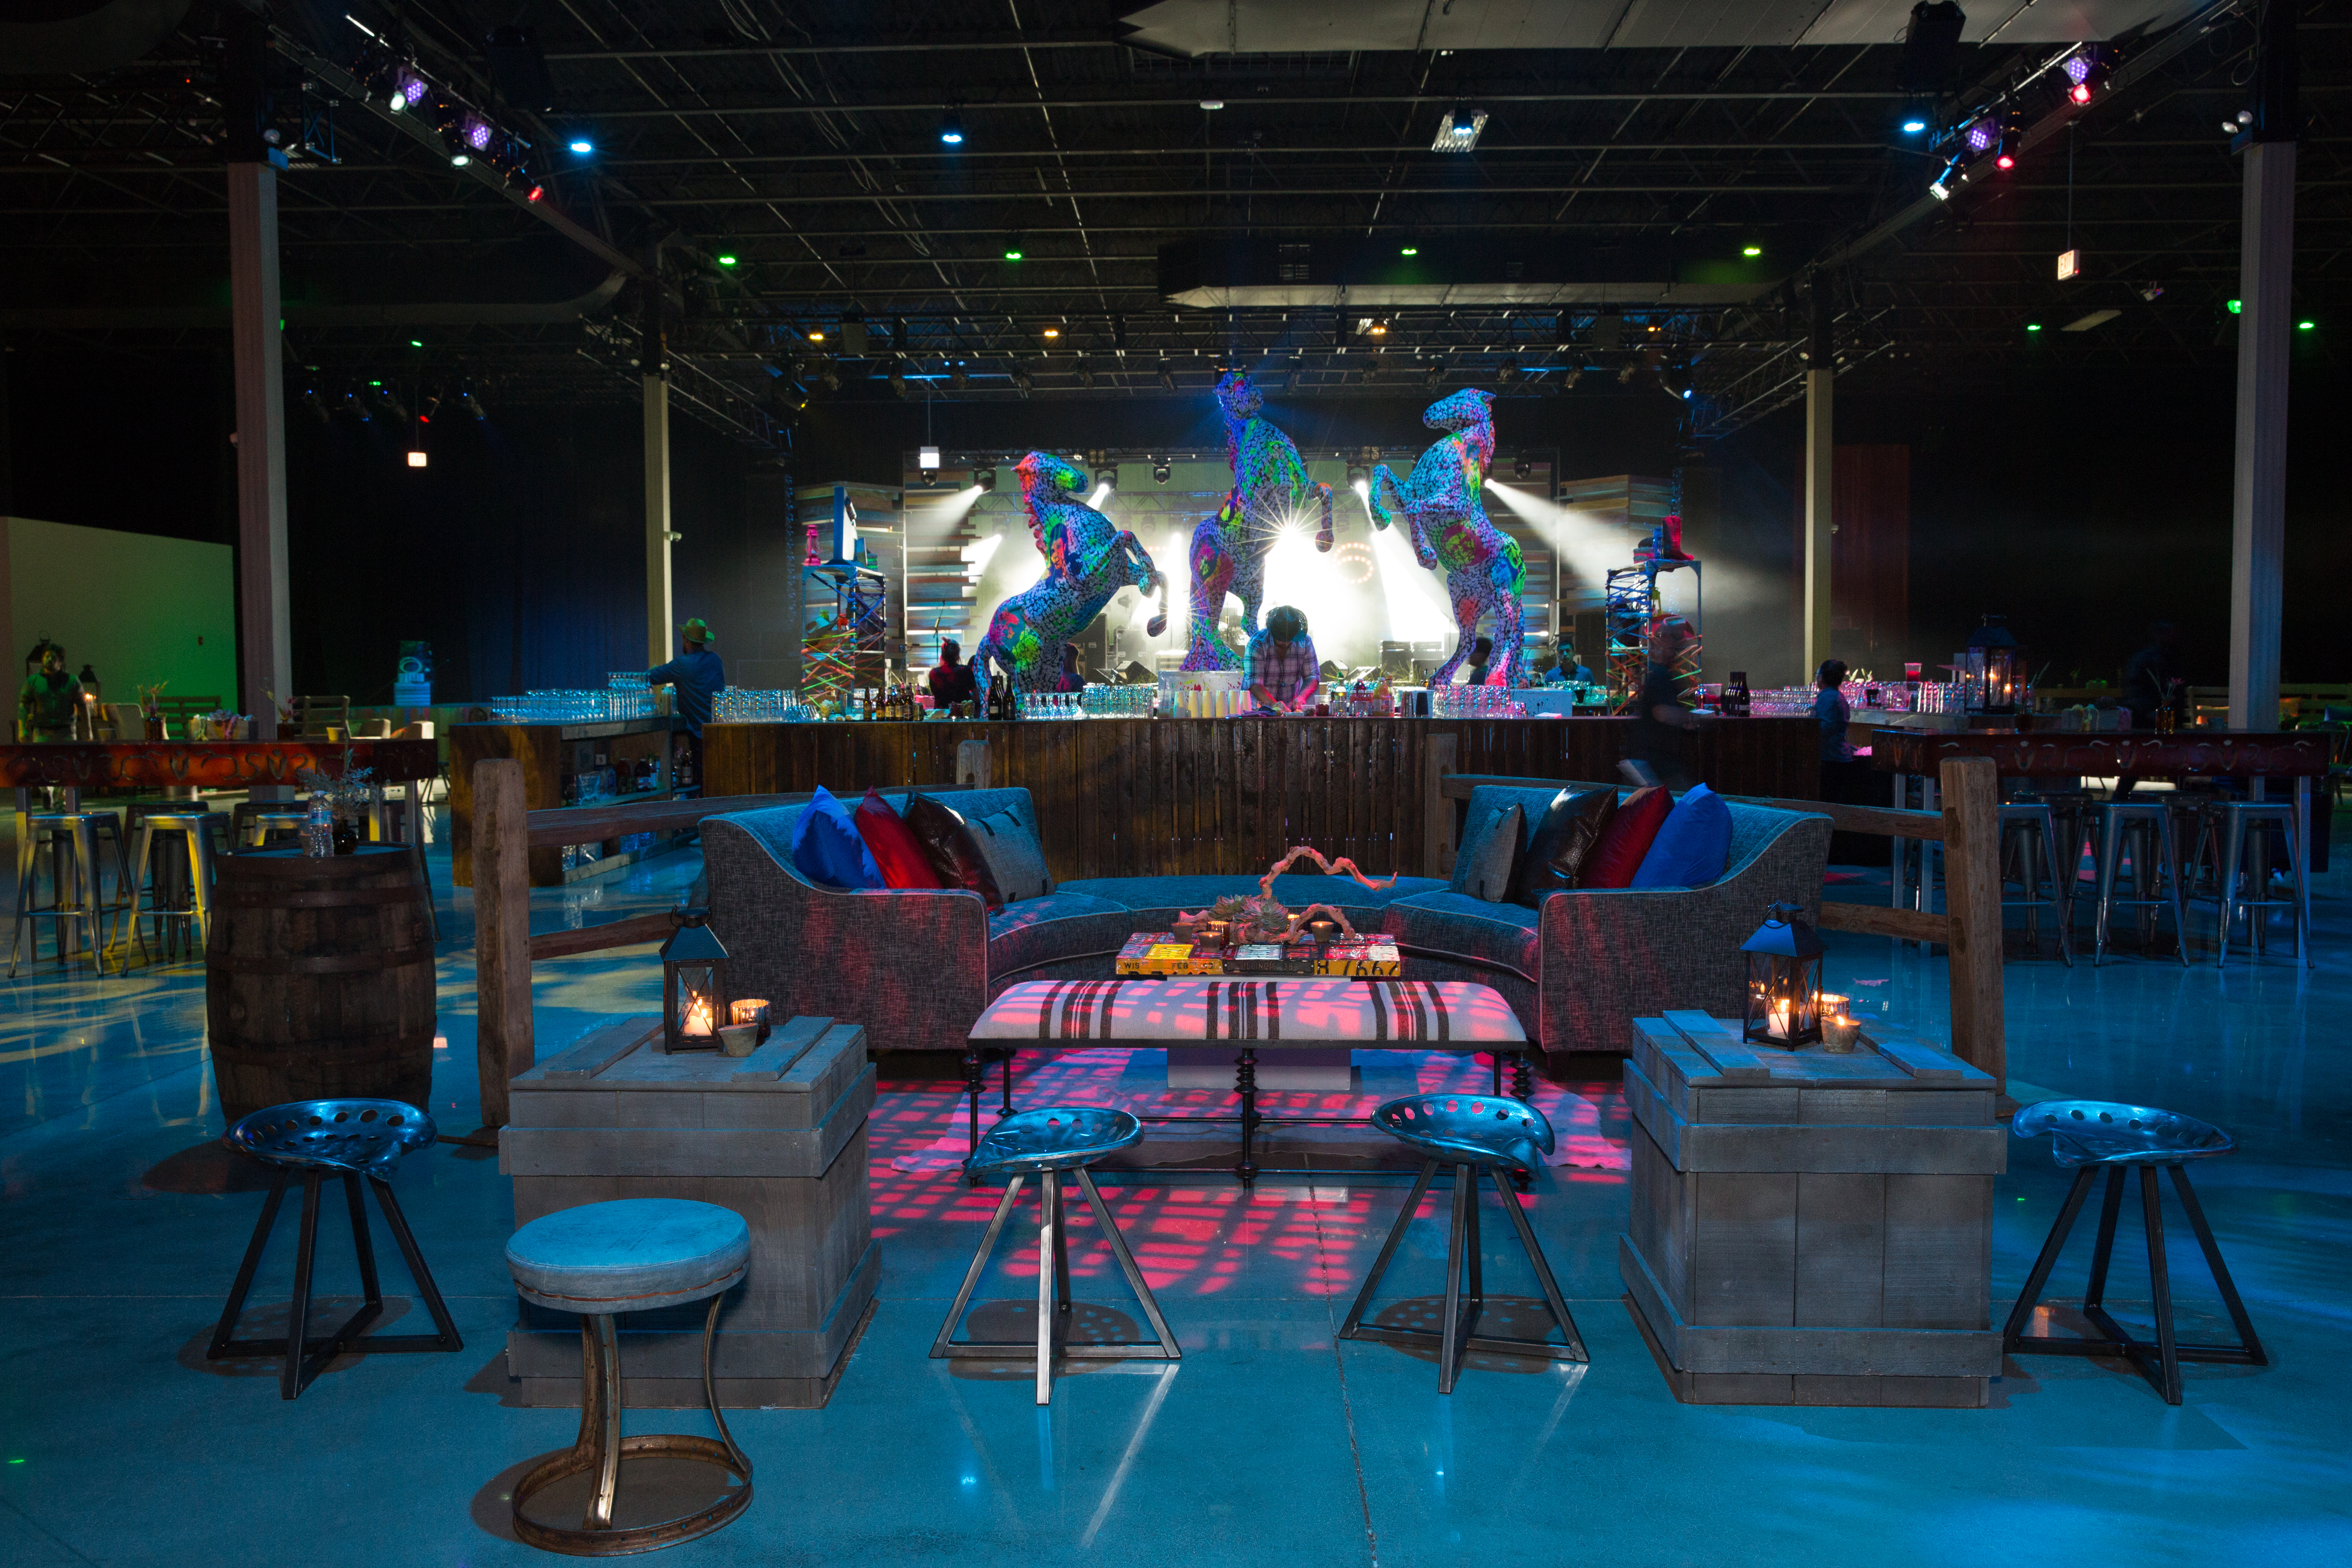 Wild West Corporate Event with Keith Urban - Sheri Whitko Photography